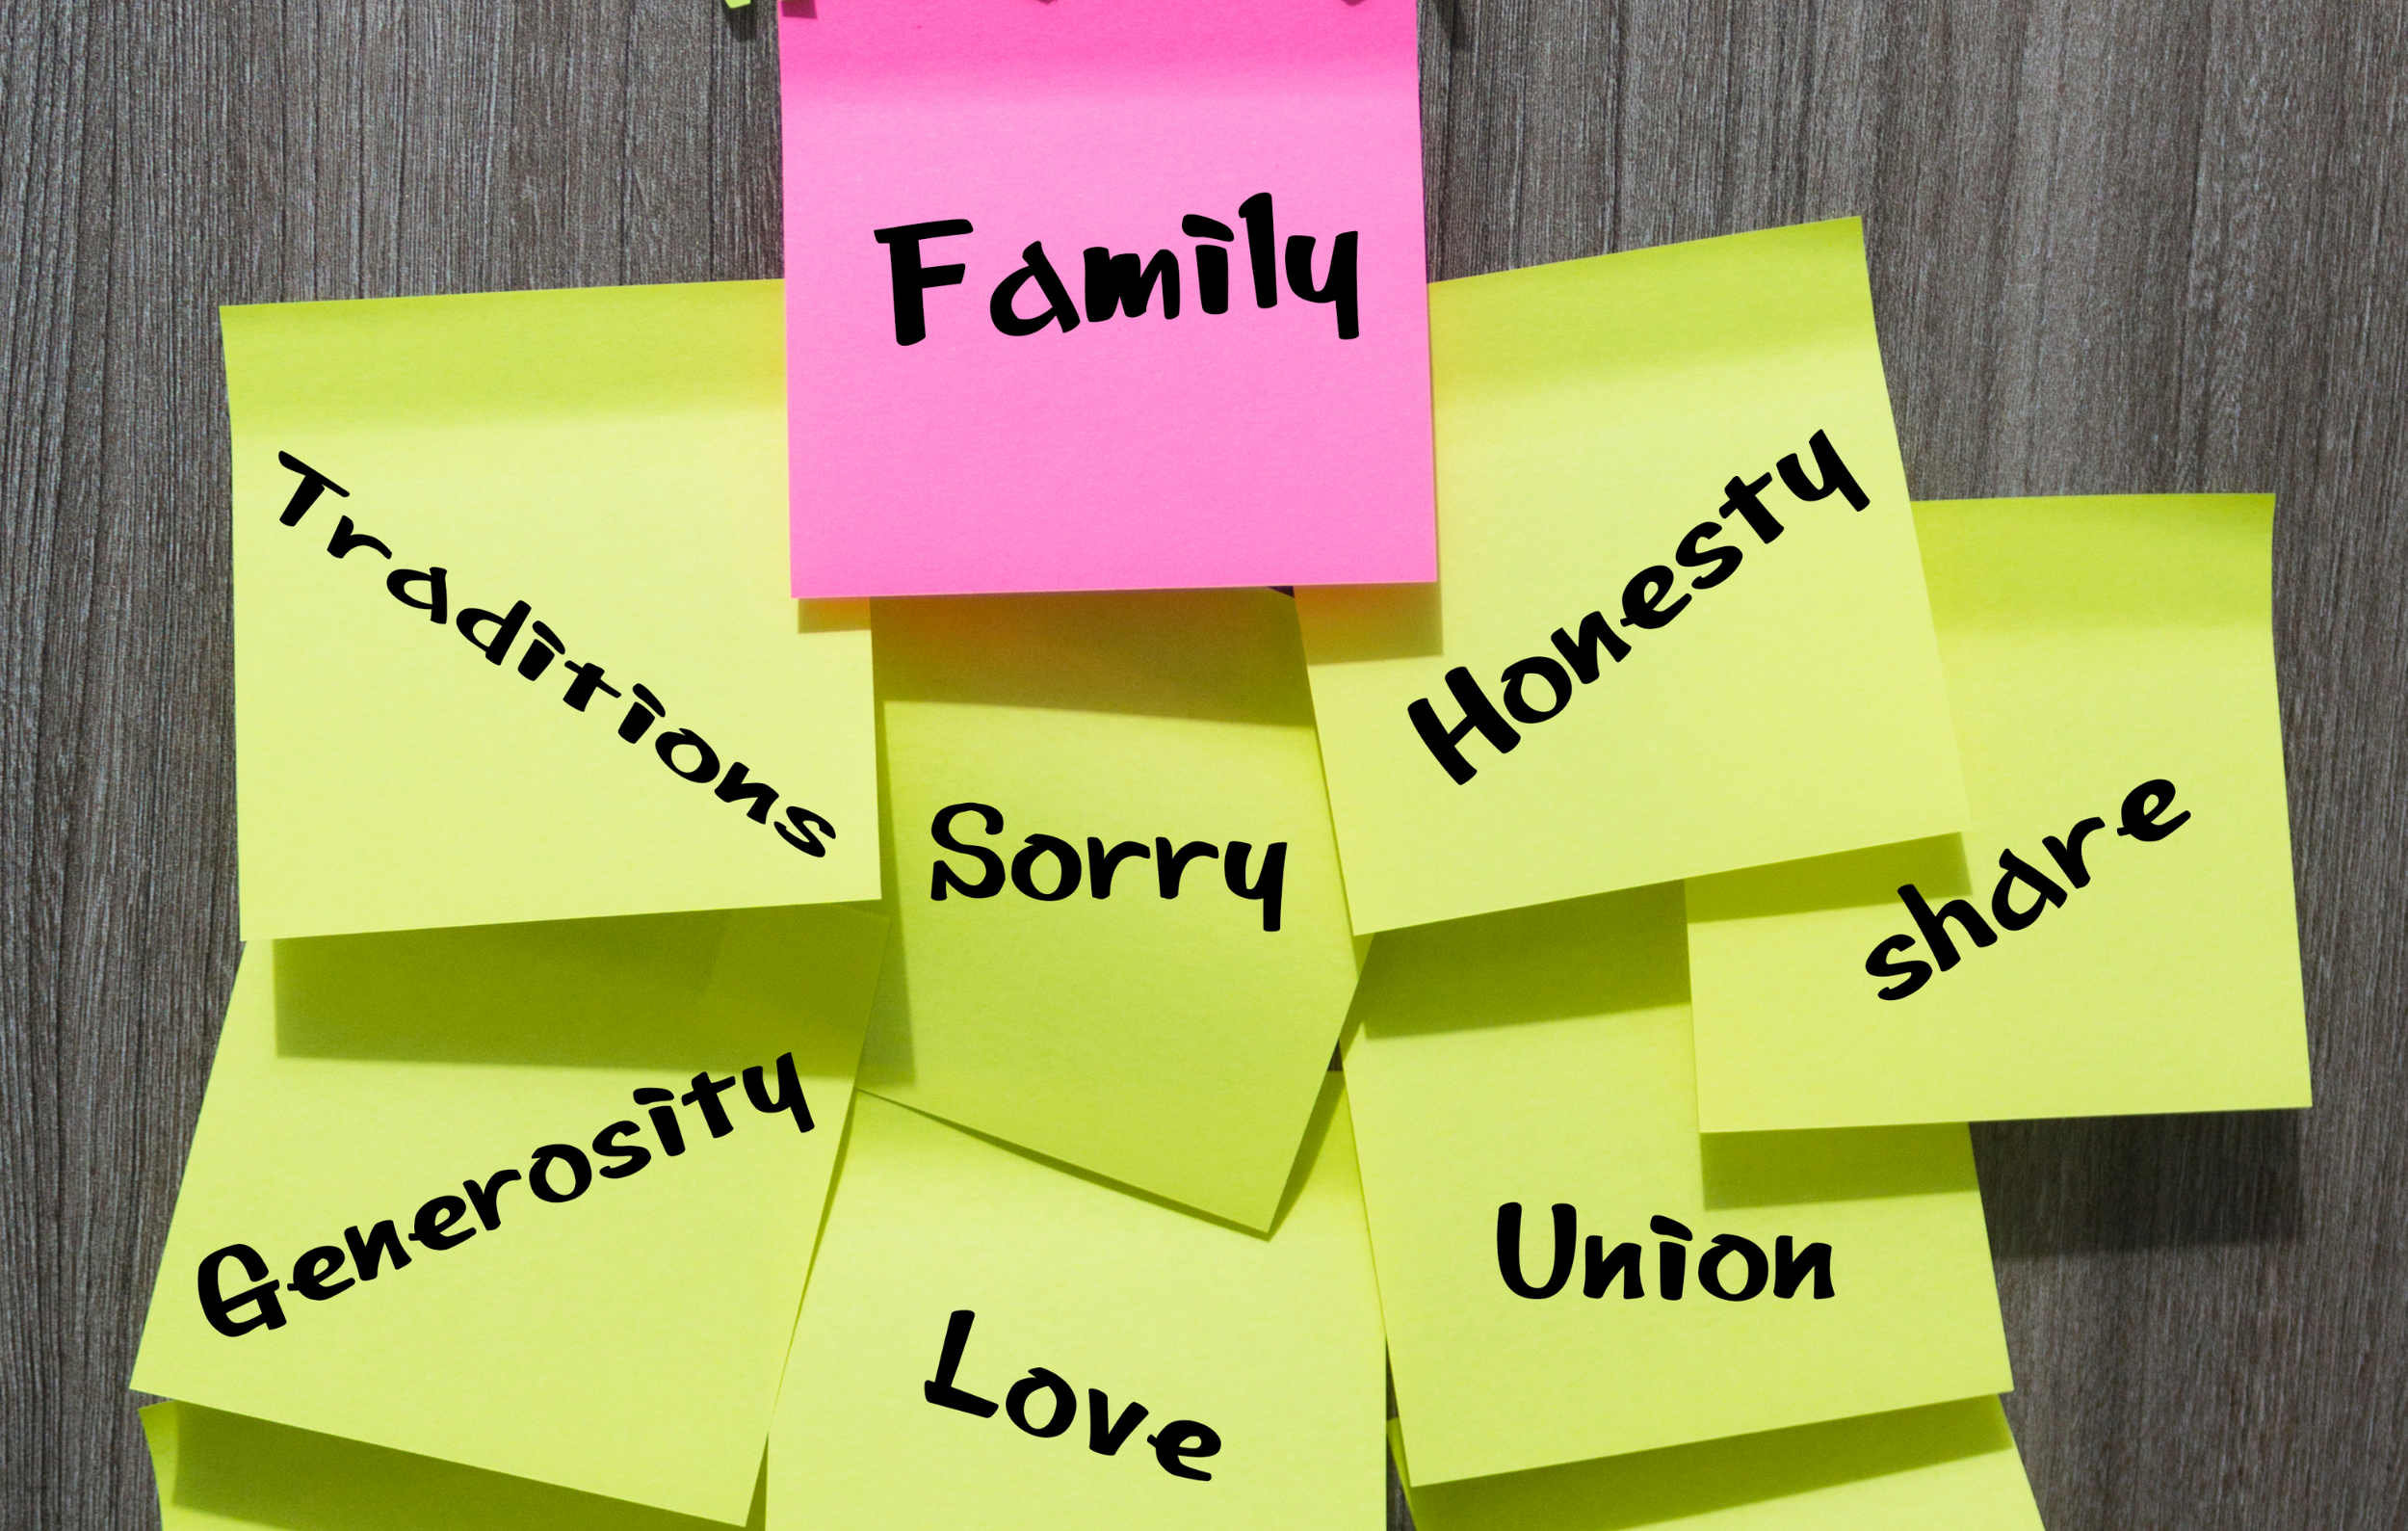 family values - sticky notes suggesting different values - sorry, honest, share, traditions, union, generosity